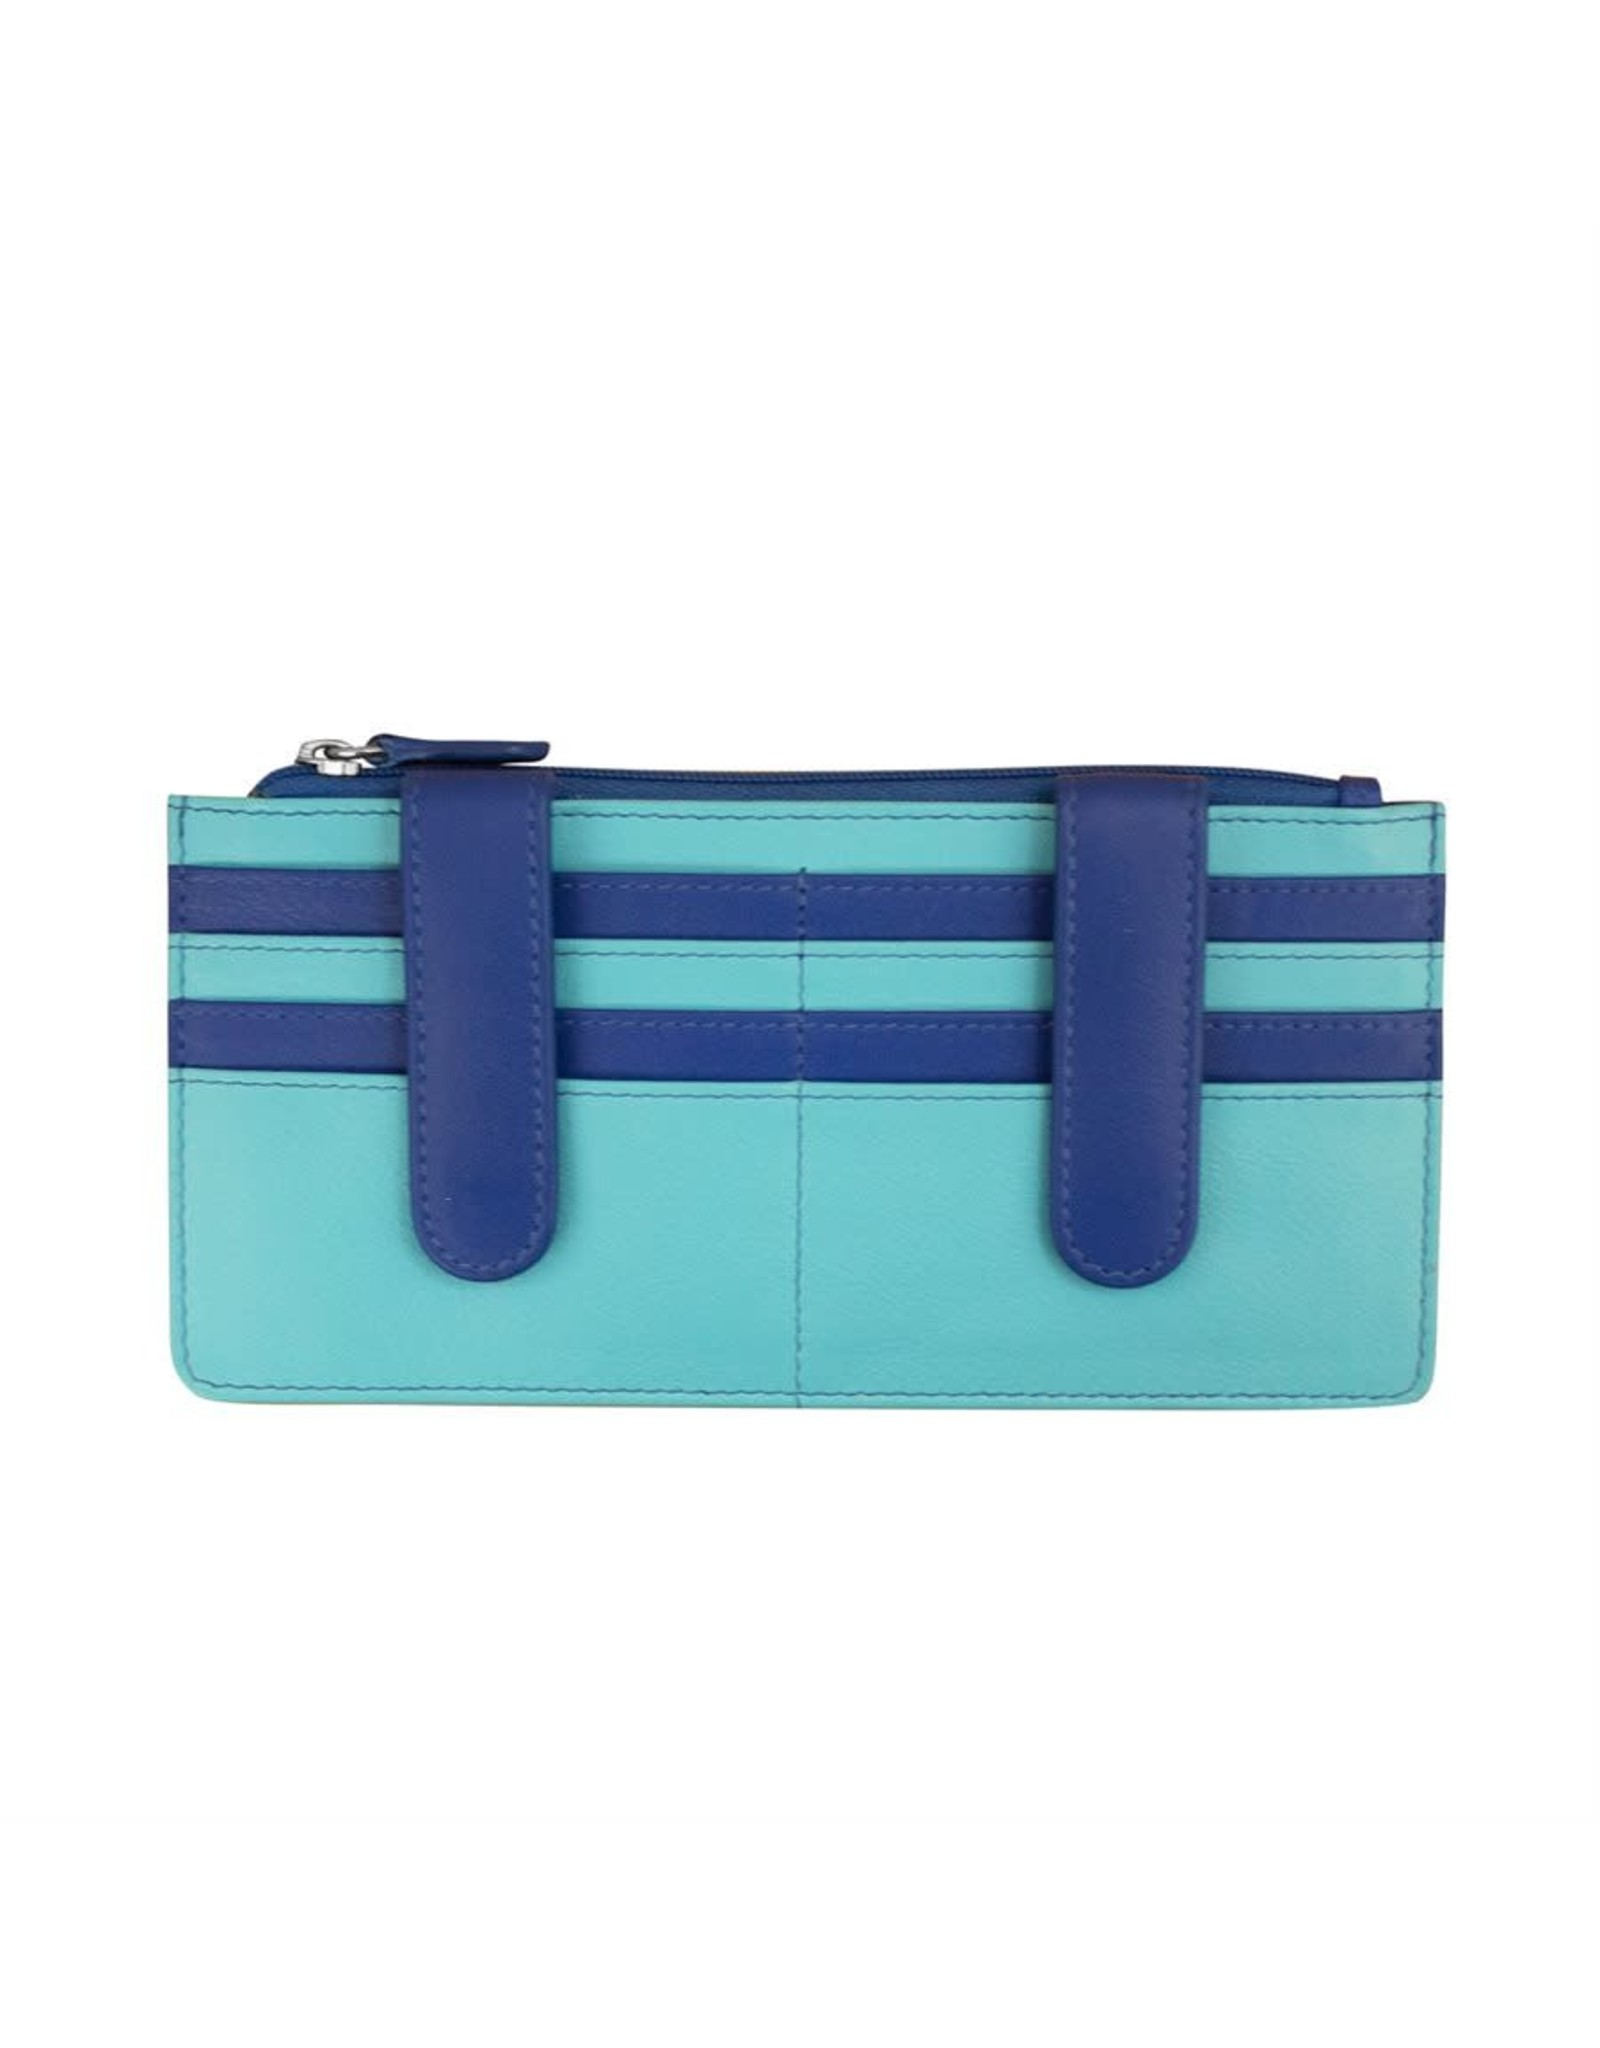 Leather Handbags and Accessories 7306 Mykonos - RFID Credit Card Wallet